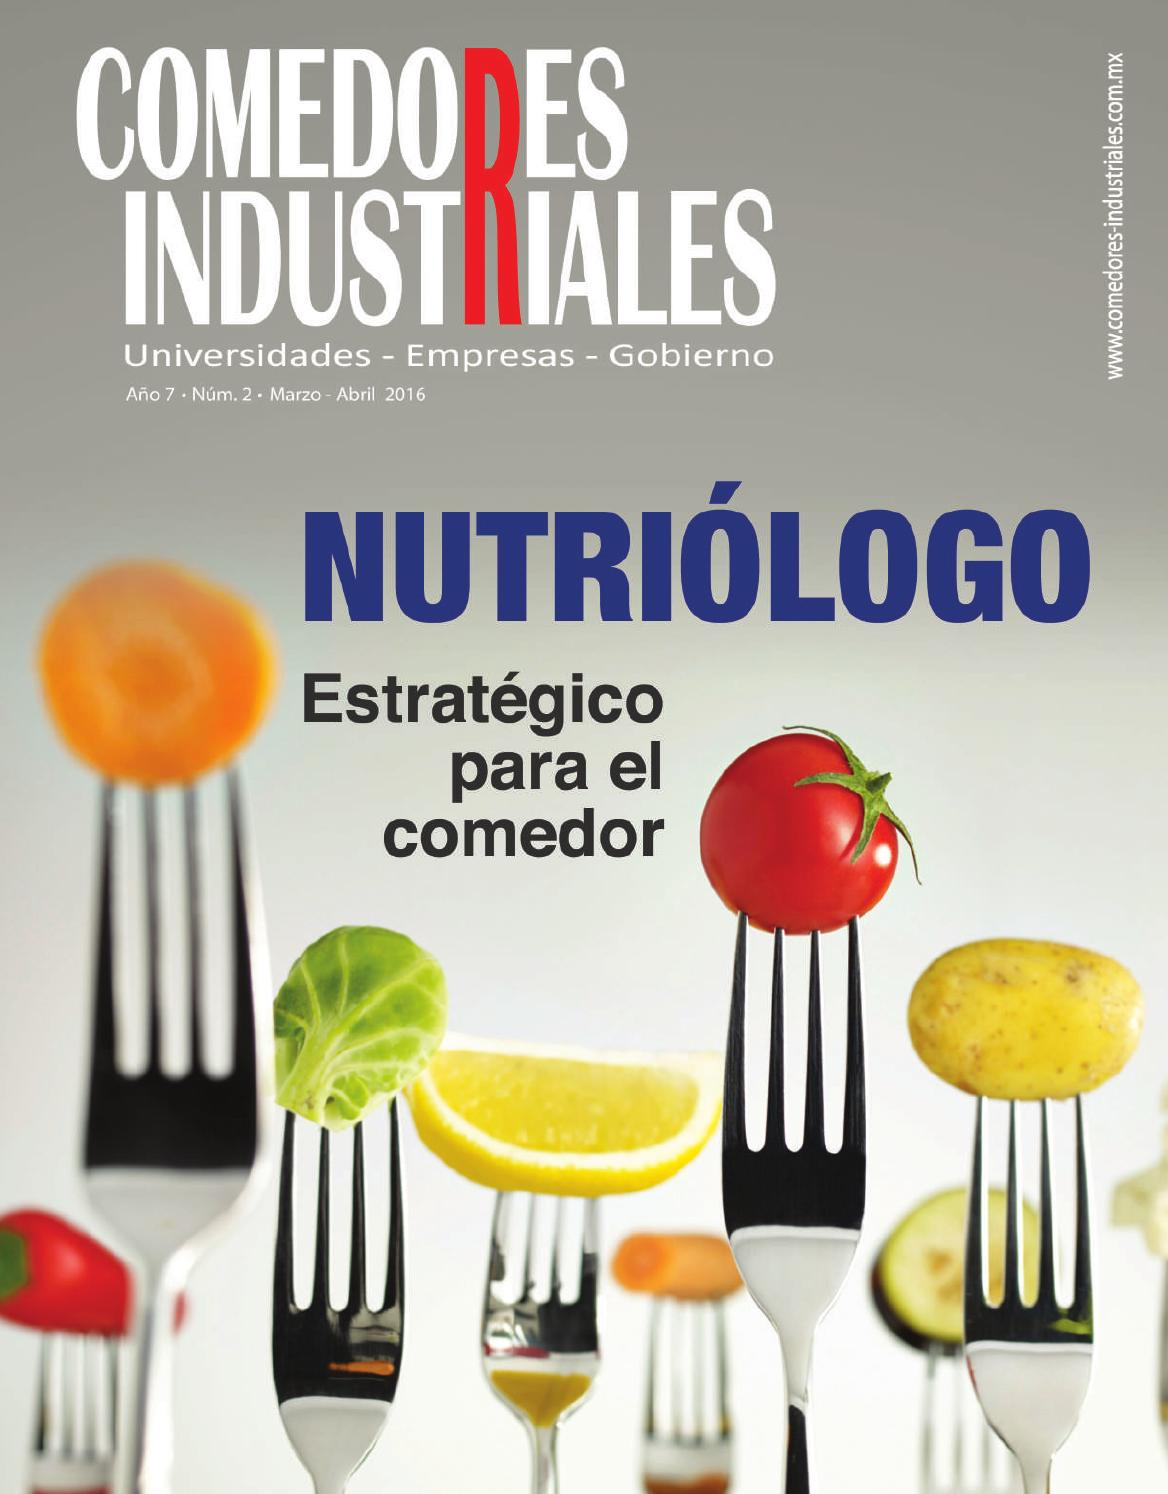 Comedores industriales marzo abril de 2016 by editorial for Mision de un comedor industrial